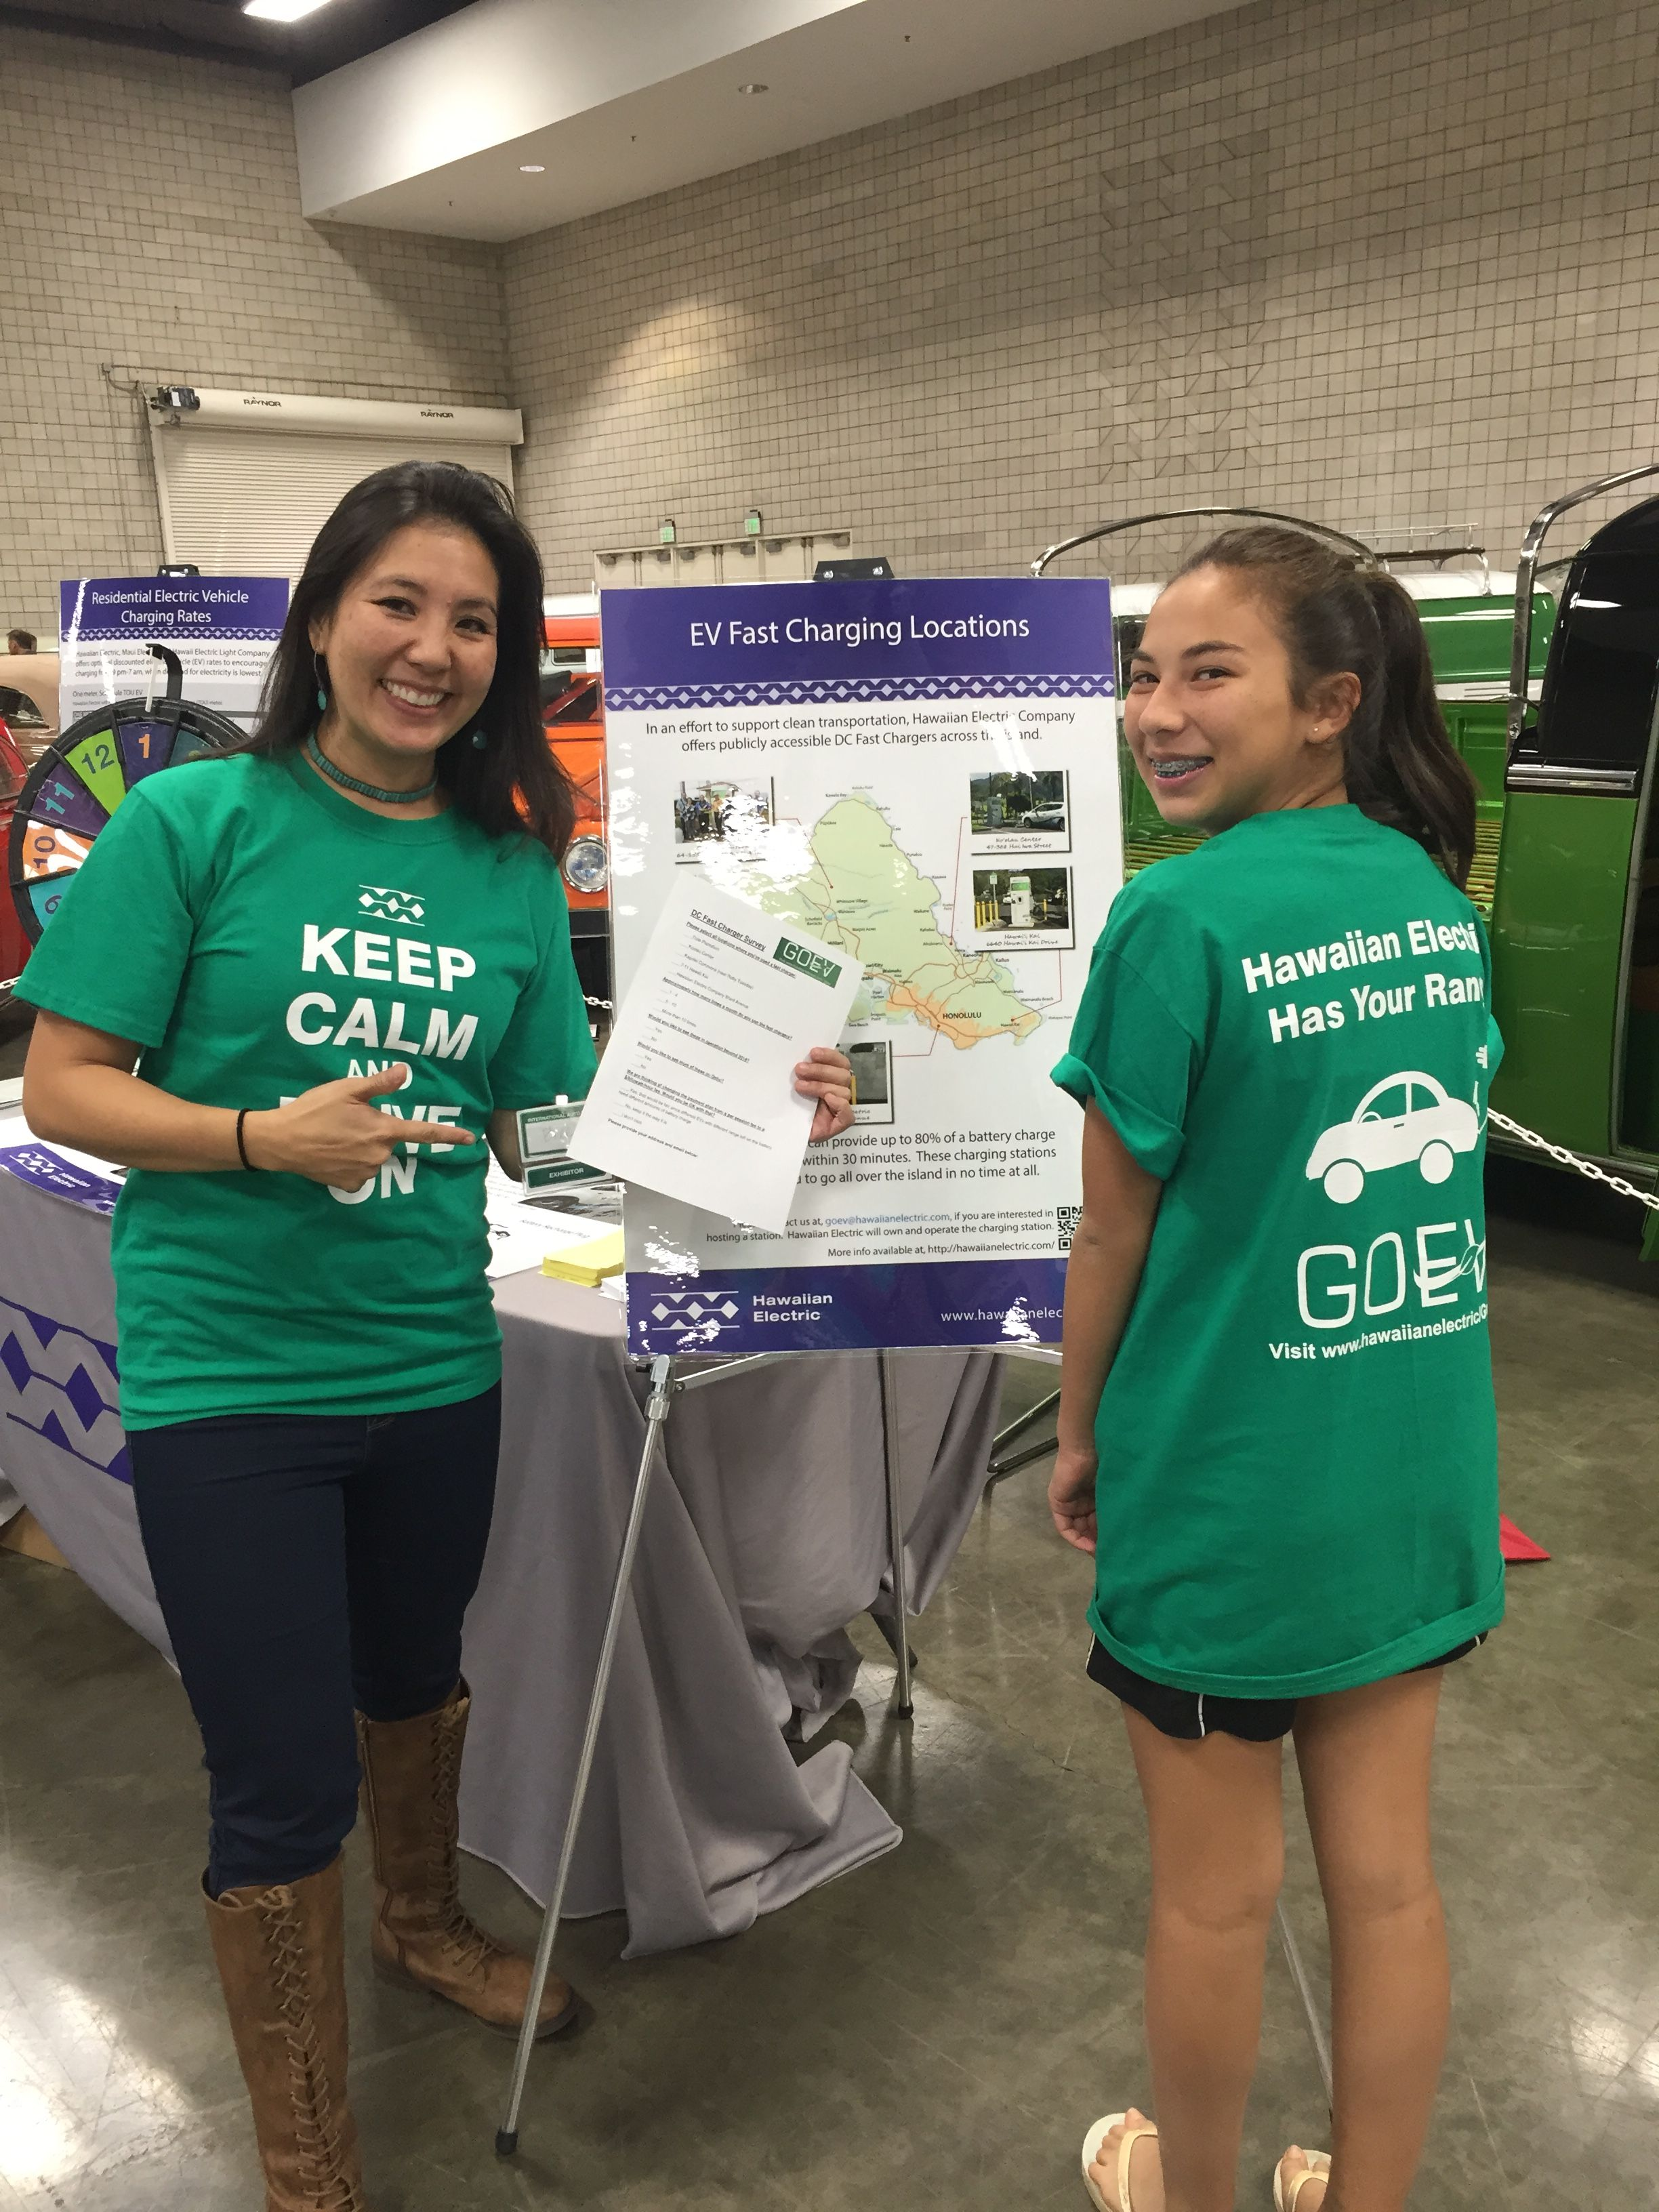 Our Hawaiian Electric team showing off their EV shirts at the First Hawaiian International Auto Show. For free online resources on electric vehicles, charging stations, and everything else EV, please visit our website: https://www.hawaiianelectric.com/clean-energy-hawaii/electric-vehicles. #EV #ElectricVehicles #GoEV